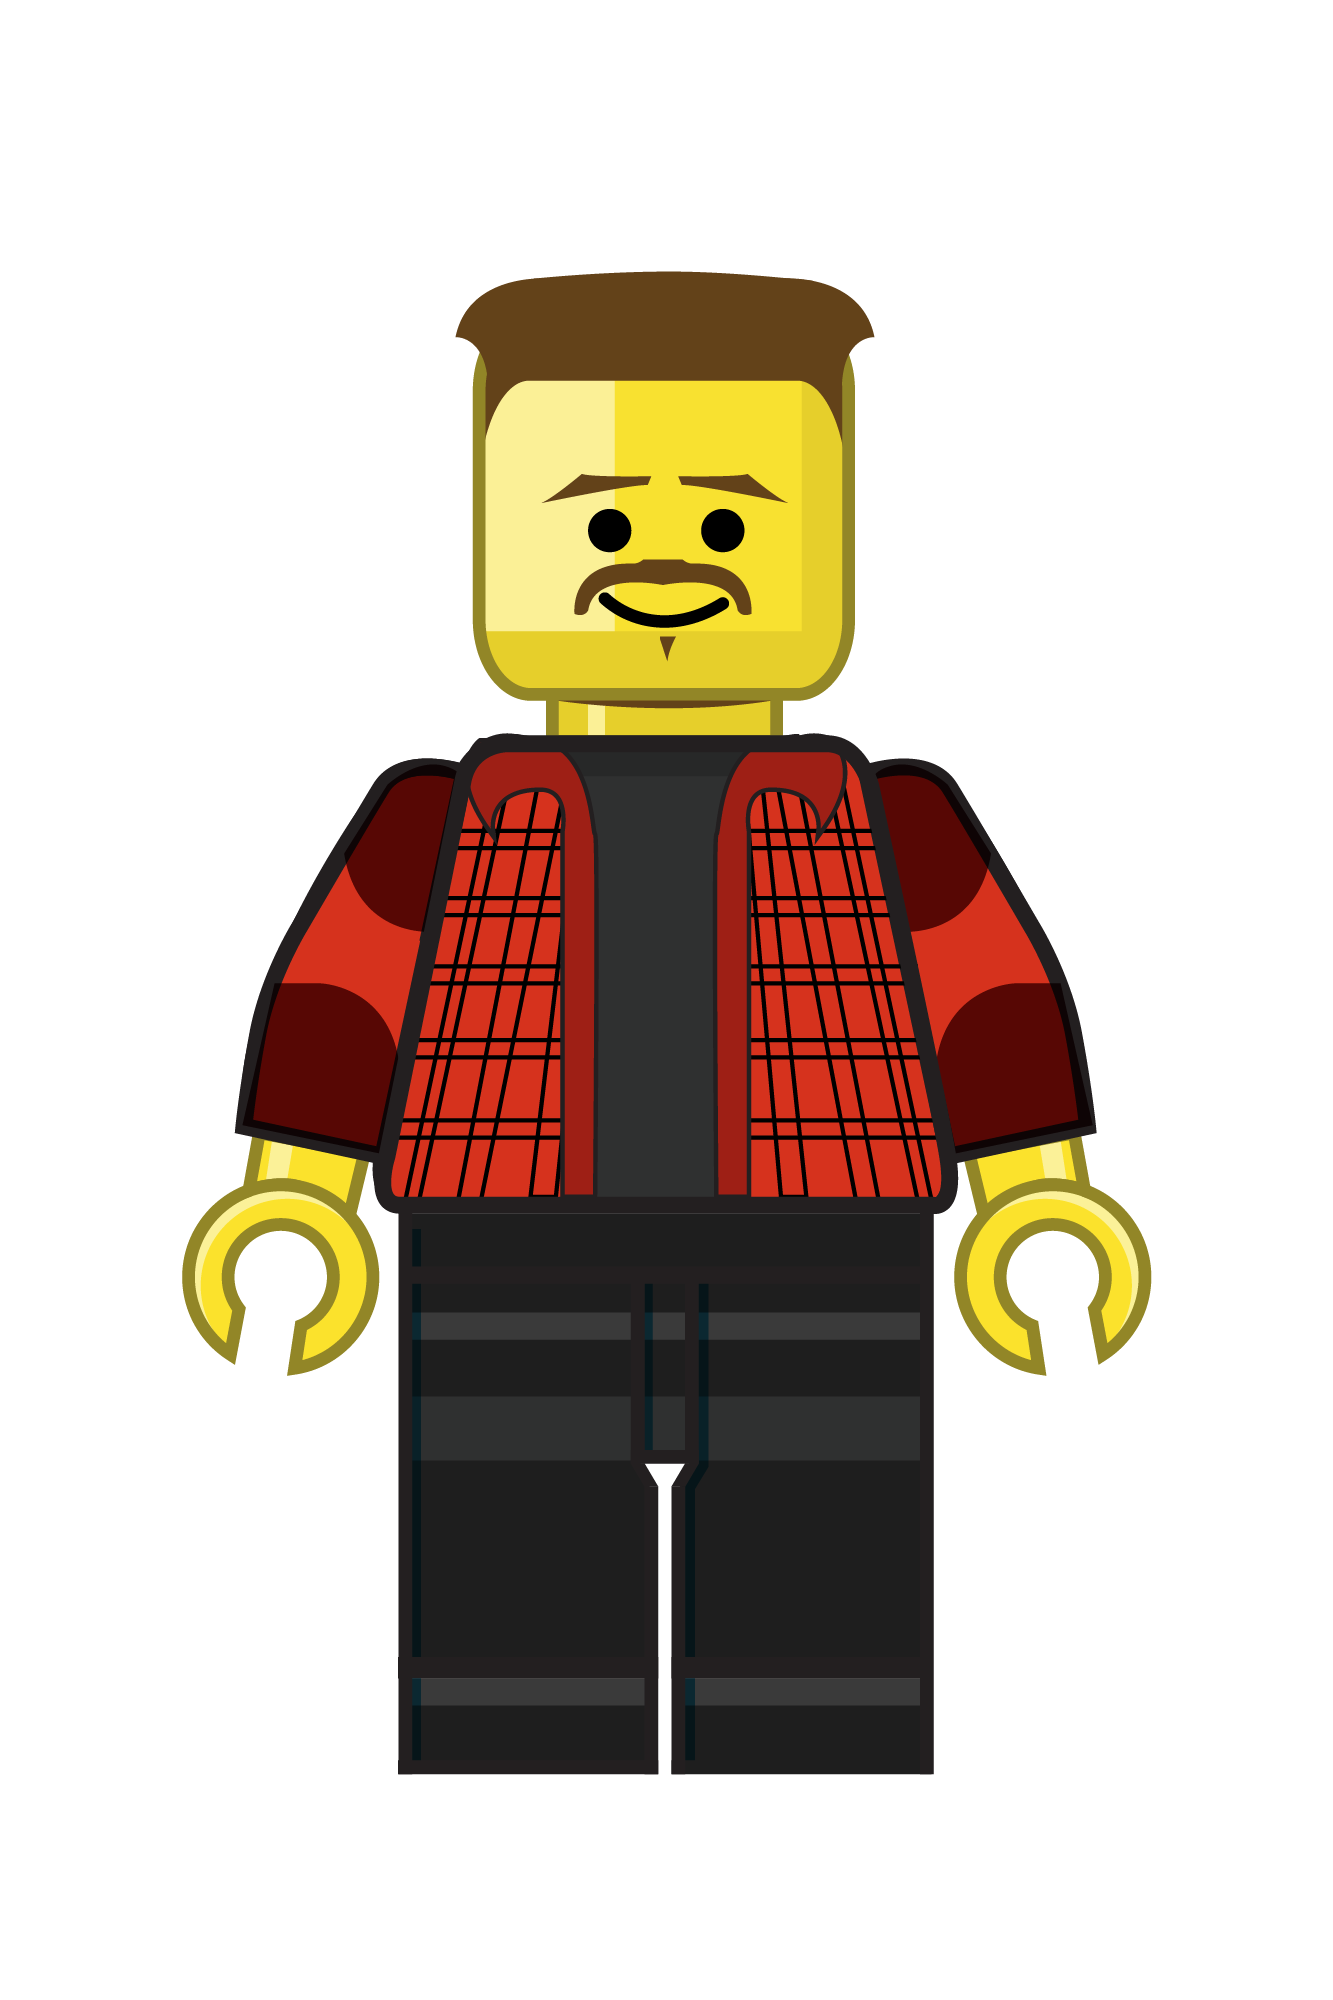 bITD_lego_BrotherElsey2.png